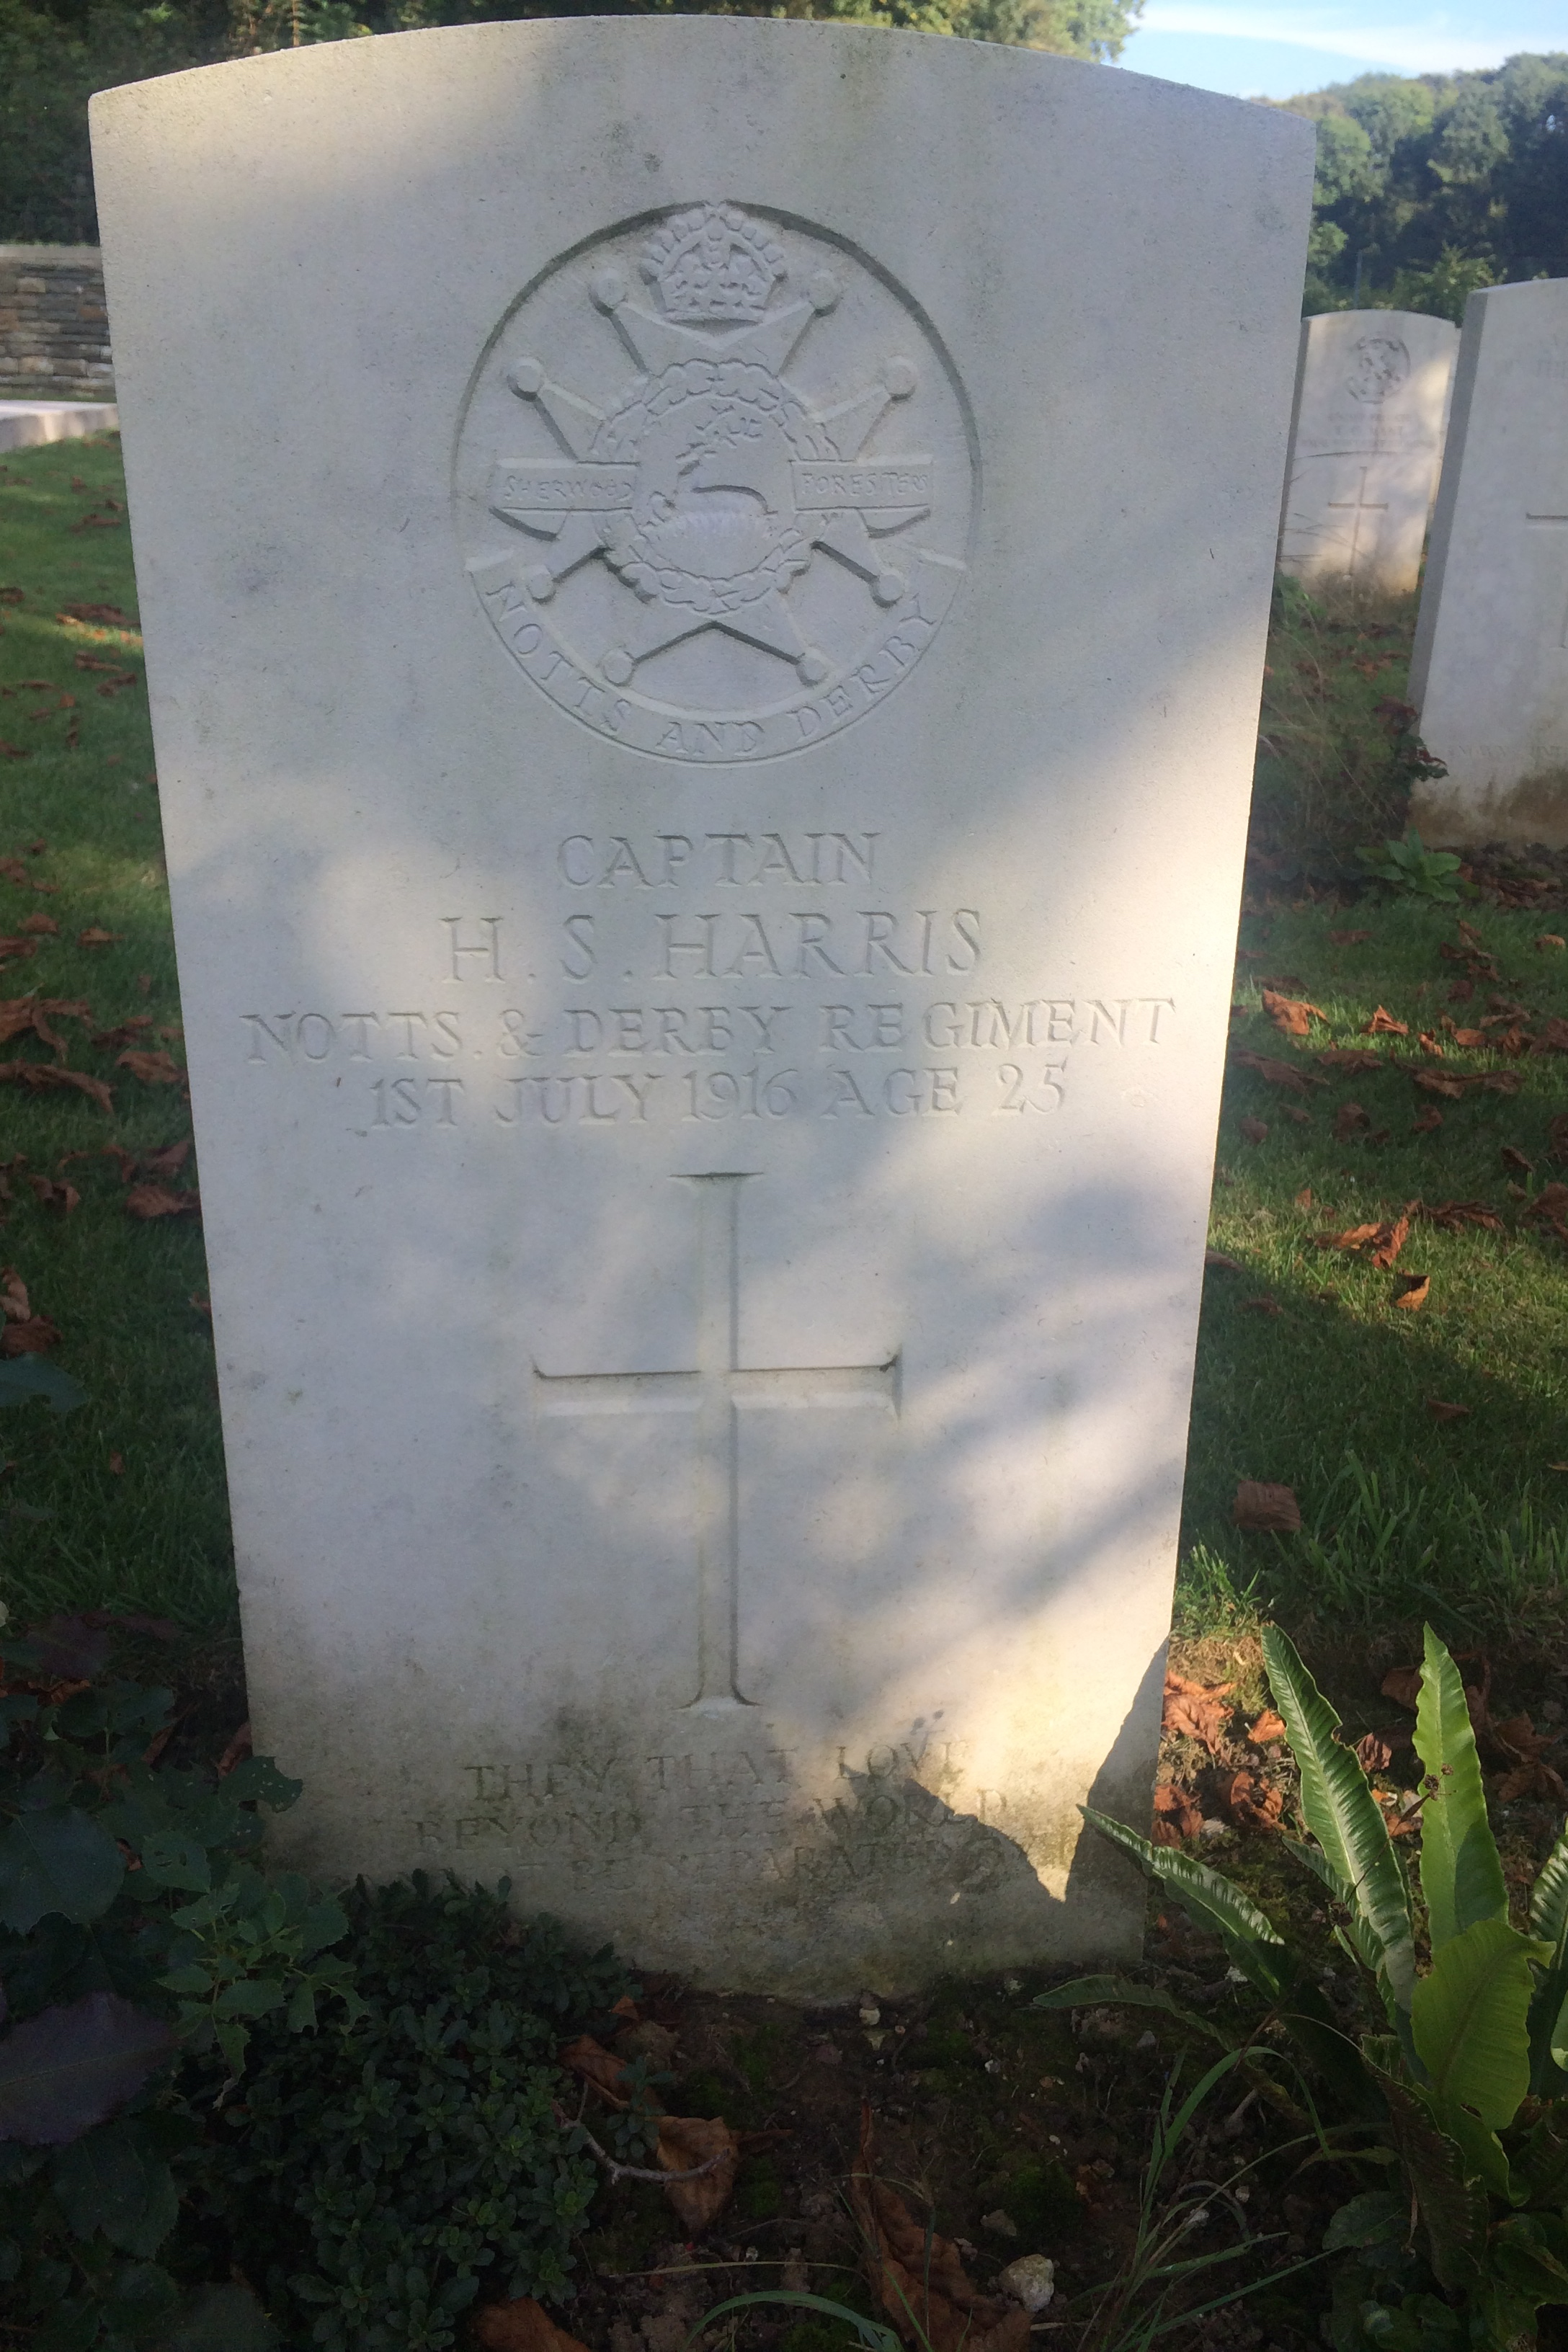 Grave marker– This is the headstone of Capt Harris in Blighty Valley CWGC, France. I am trying to trace any relative of Capt Harris as his headstone was the inspiration for my novel about the Great War. Kind regards Paul